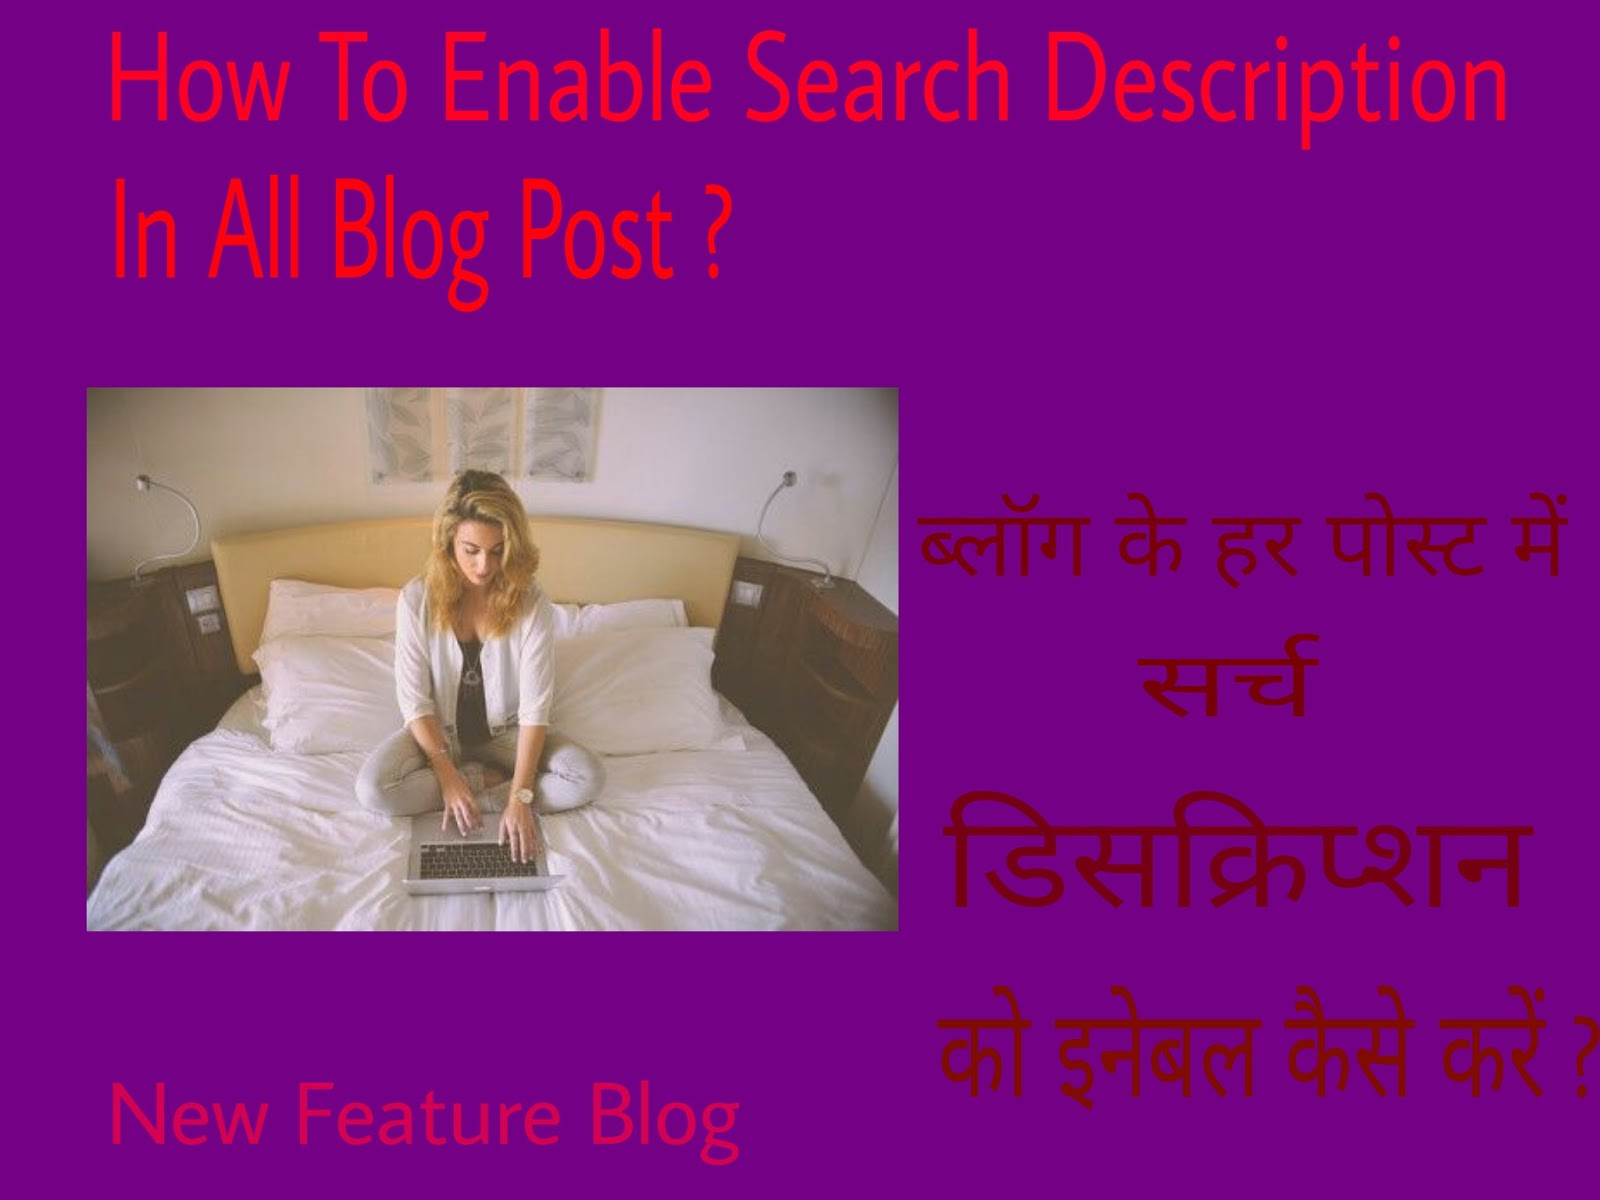 blog-ke-har-post-me meta-search-description-ko-enable-kaise-kare